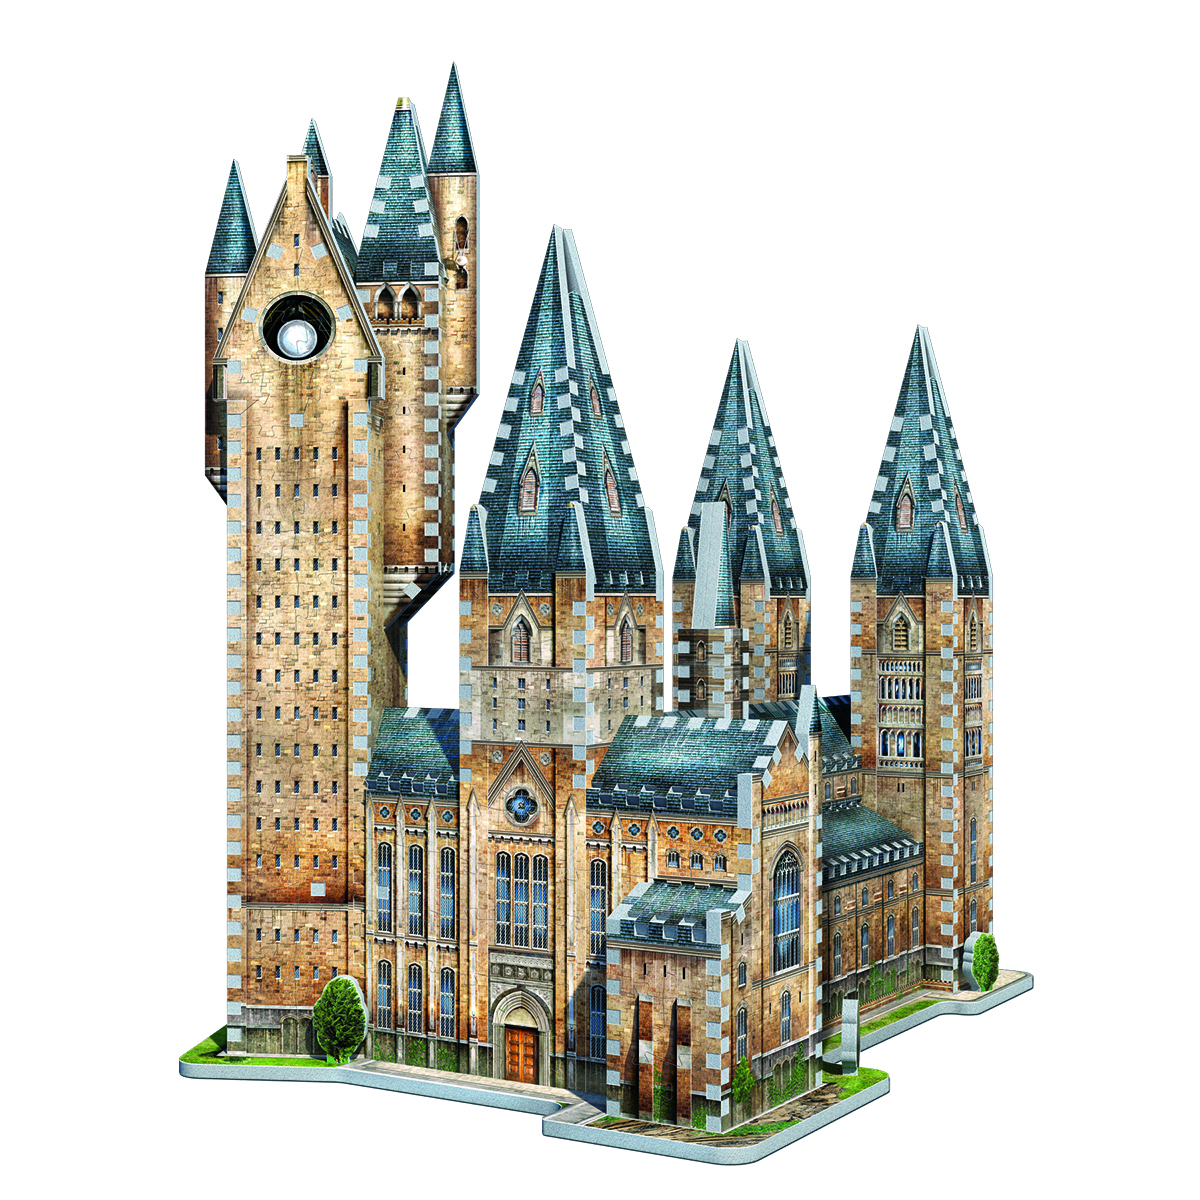 Hogwarts Astronomy Tower Movies / Books / TV Jigsaw Puzzle